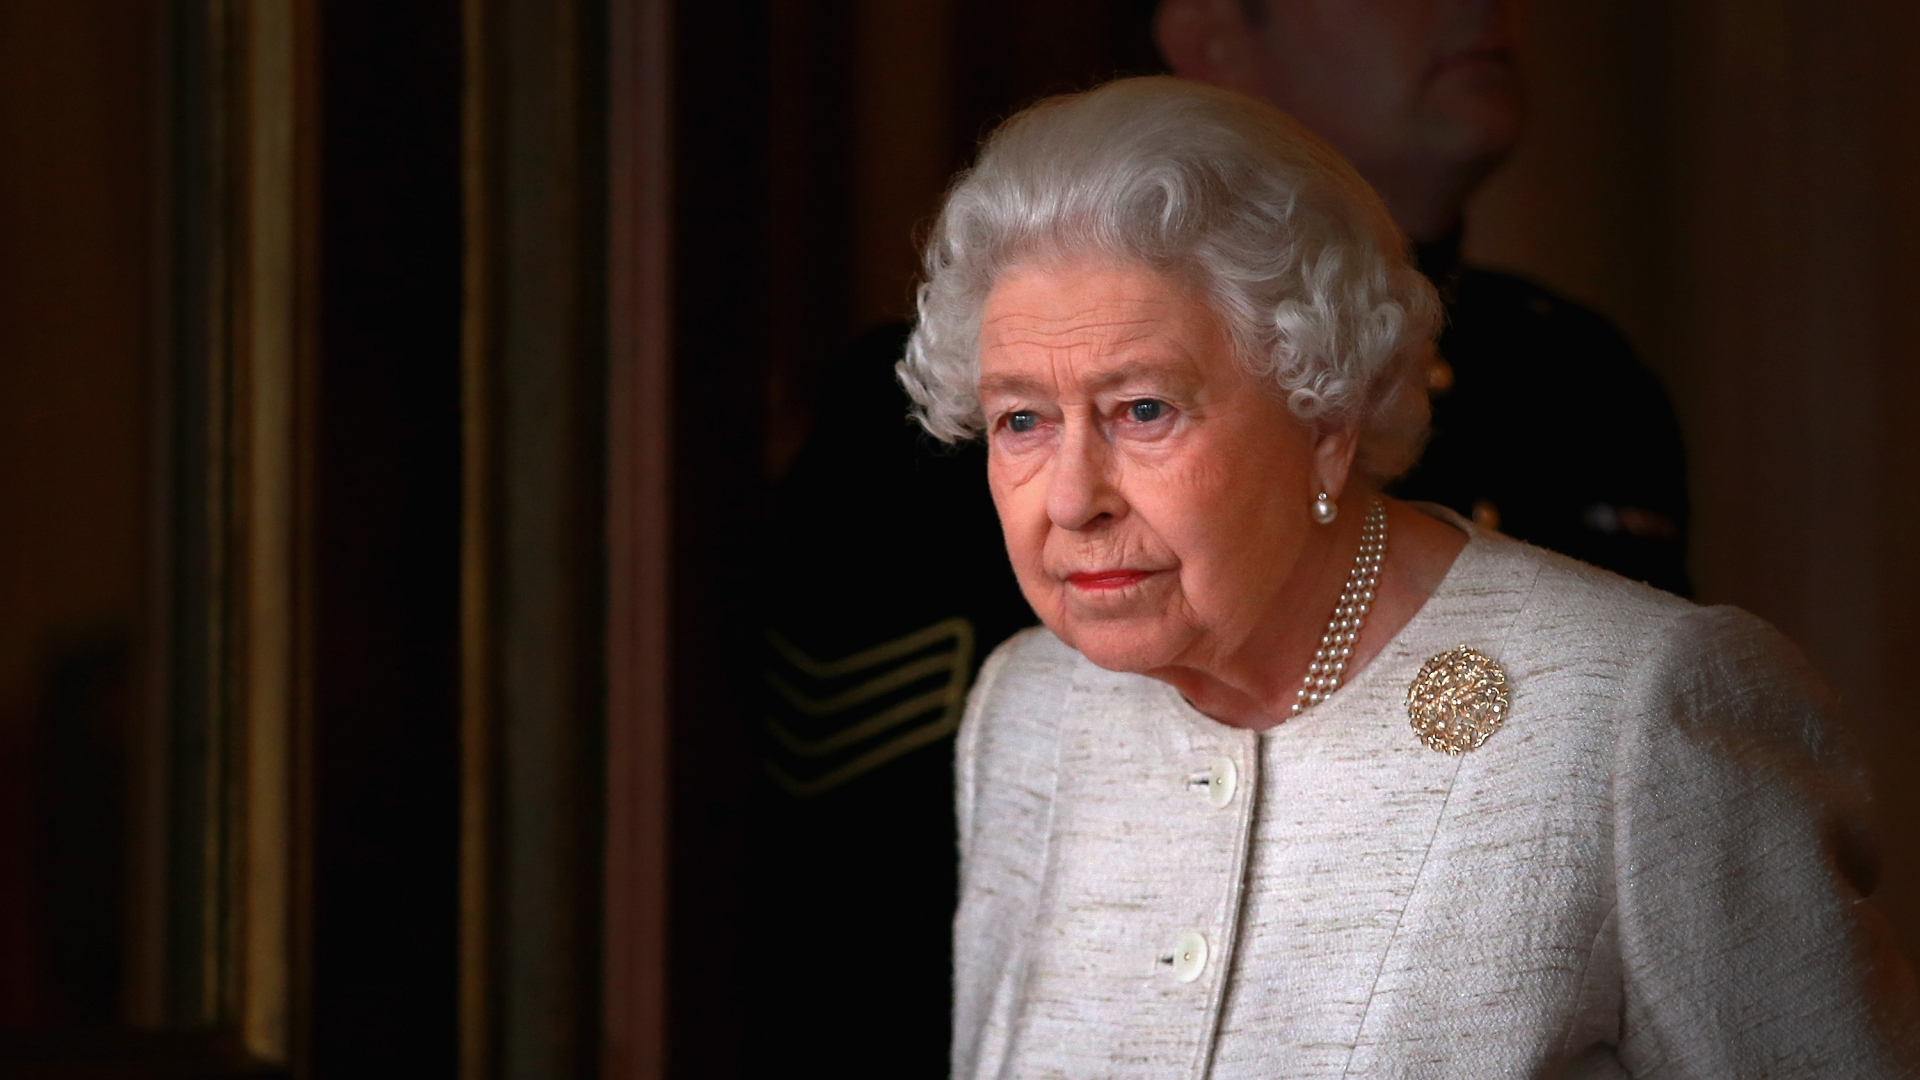 Queen Elizabeth II. (Credit: Chris Jackson - WPA Pool/Getty Images)